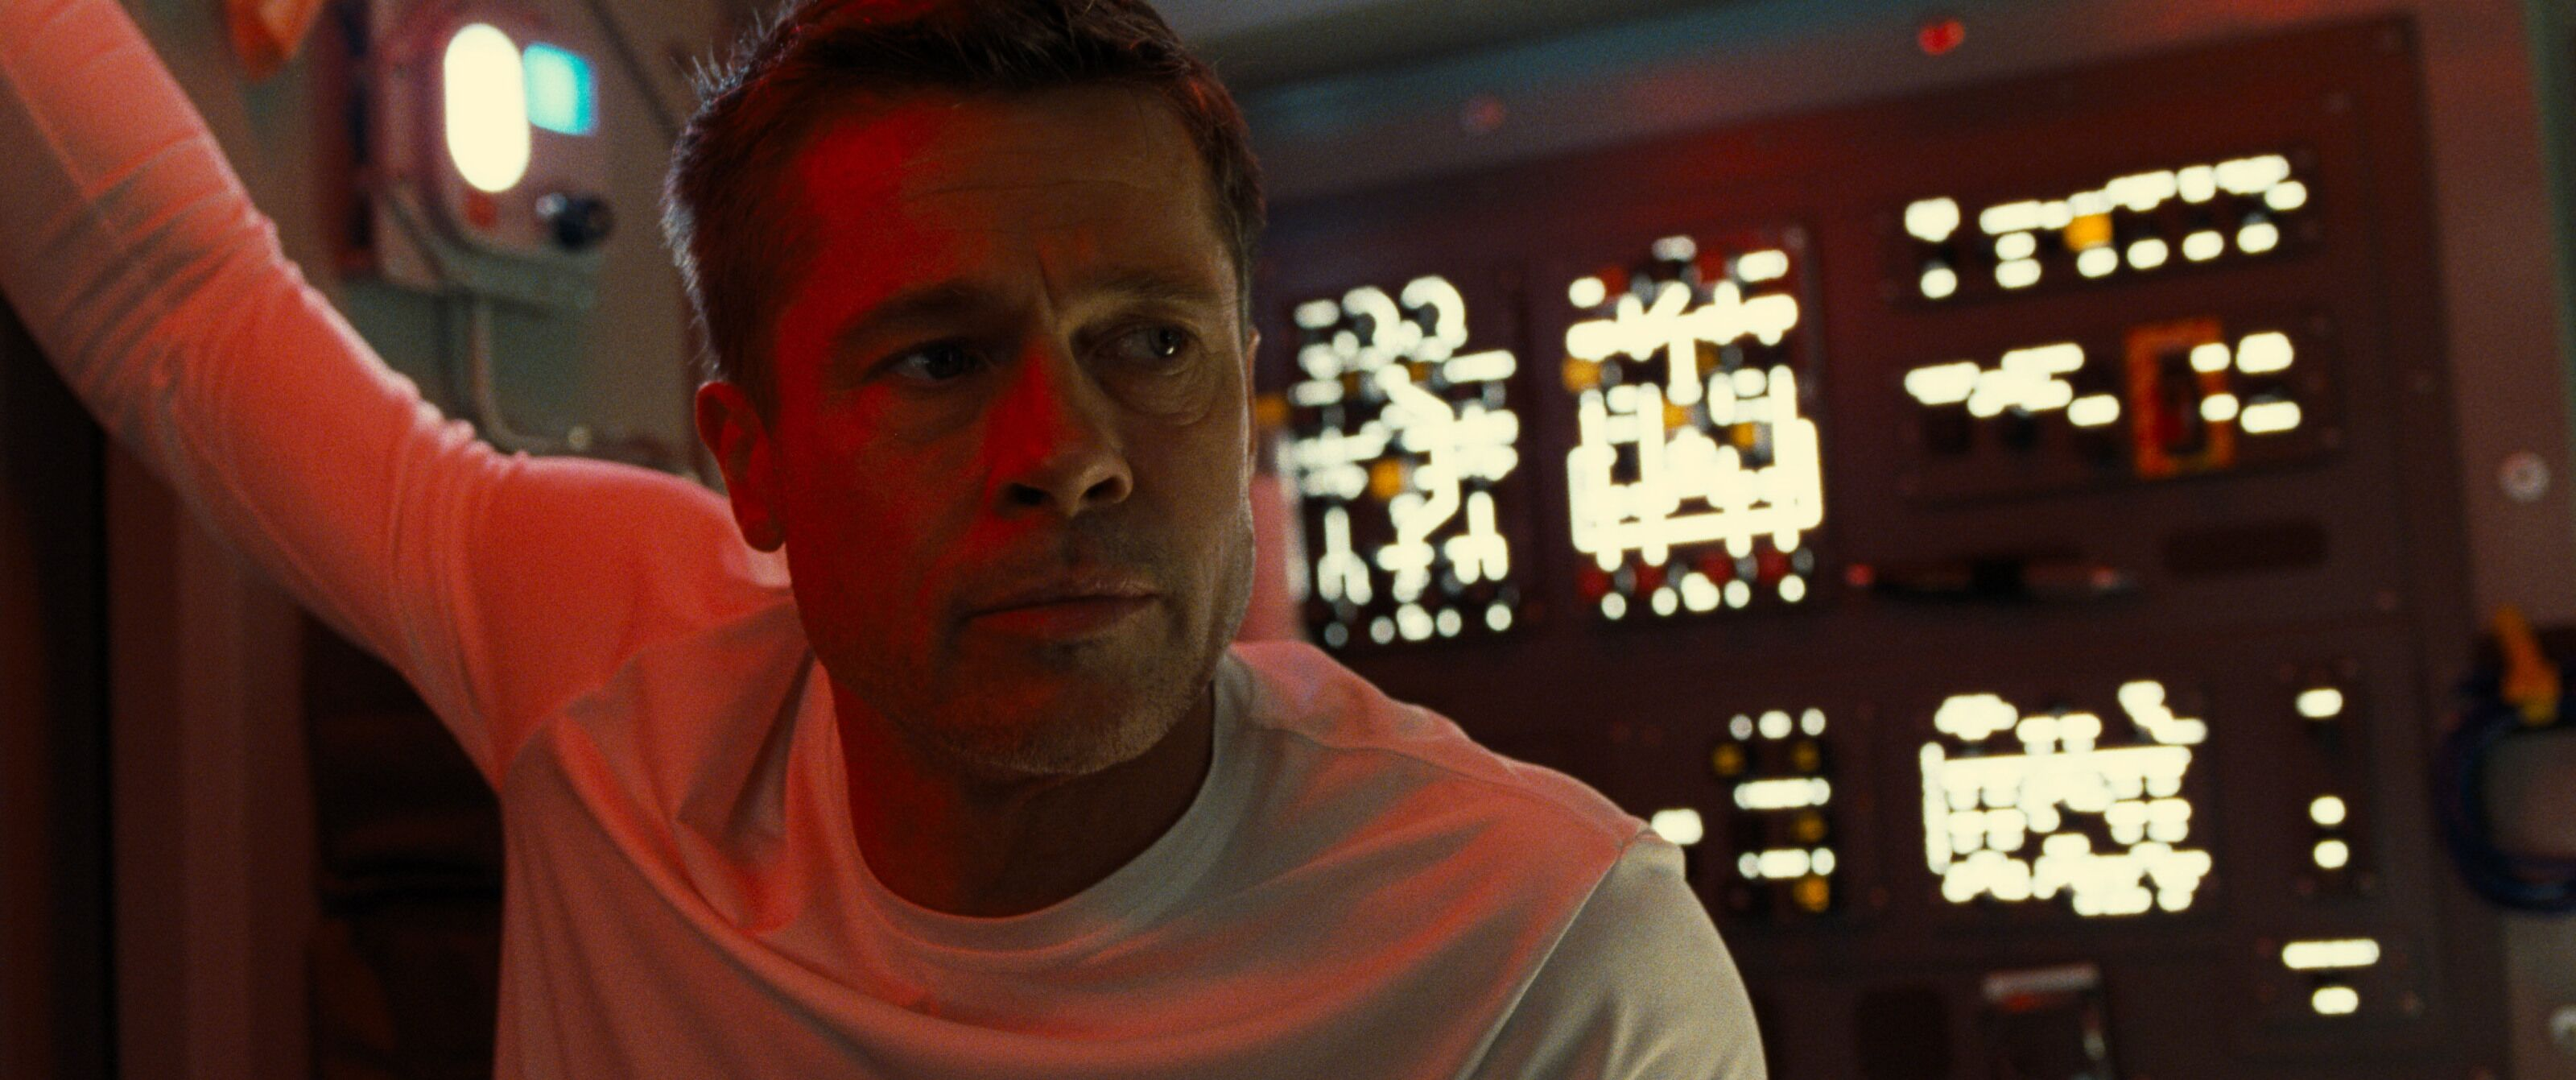 Ad Astra review: Brad Pitt's banal space adventure is a bad trip